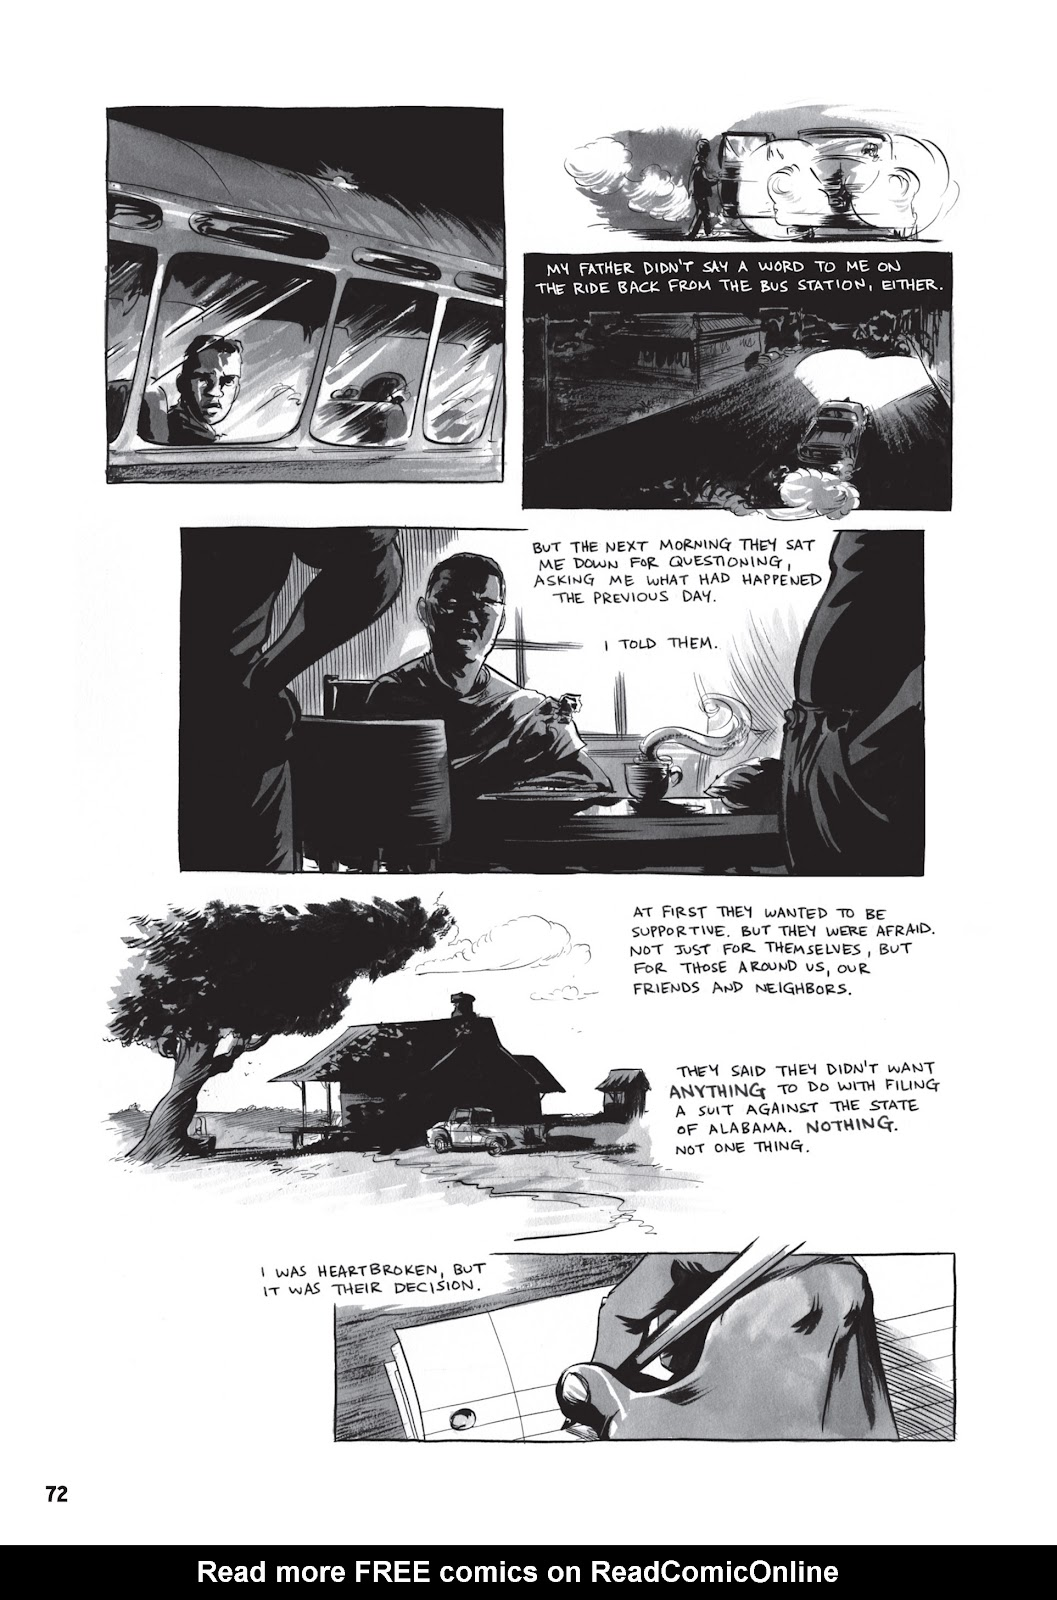 March 1 Page 69